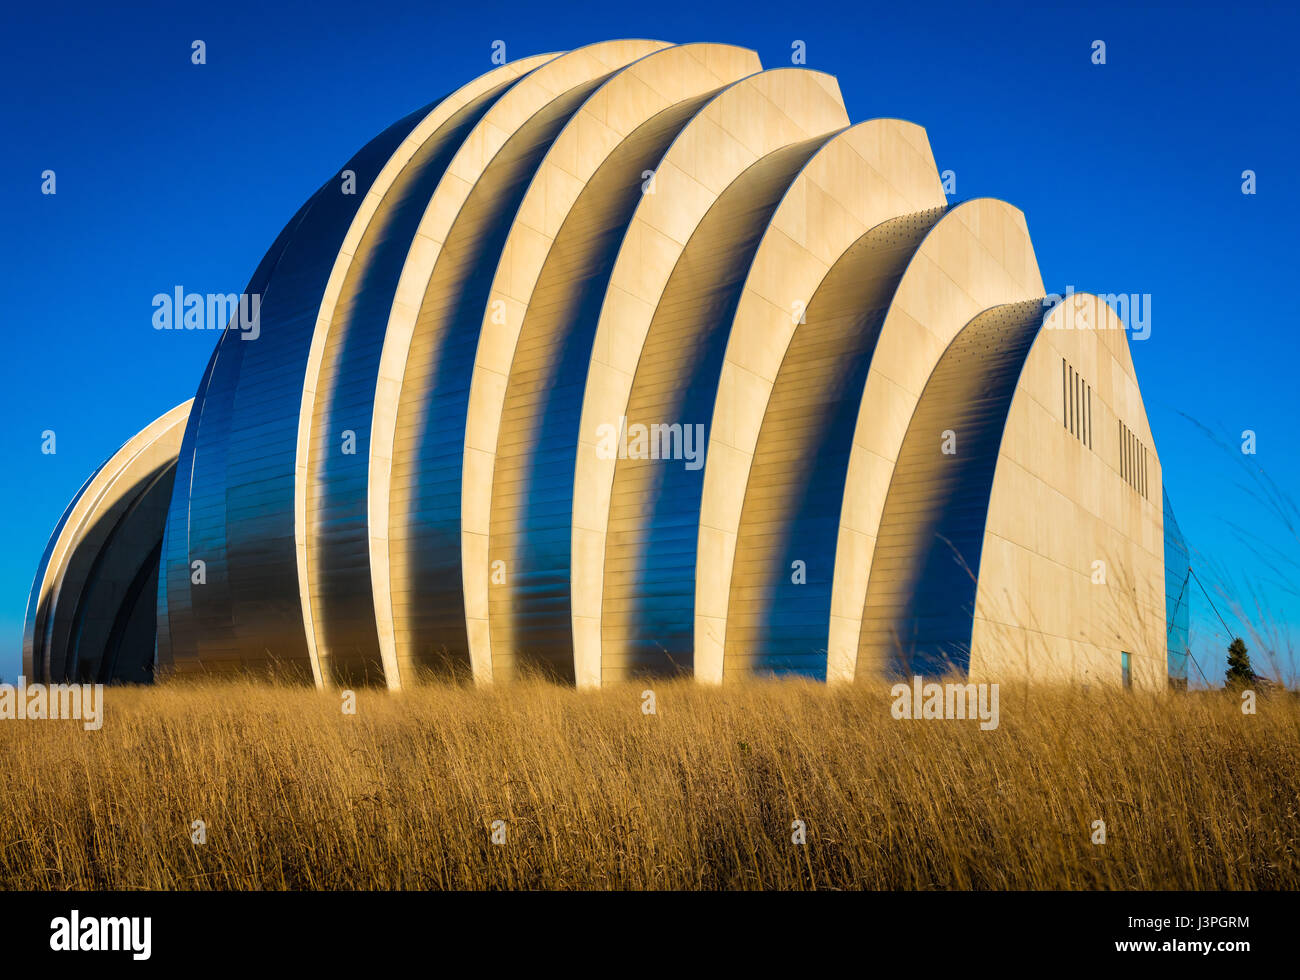 The Kauffman Center for the Performing Arts is a performing arts center in downtown Kansas City, Missouri, USA, - Stock Image